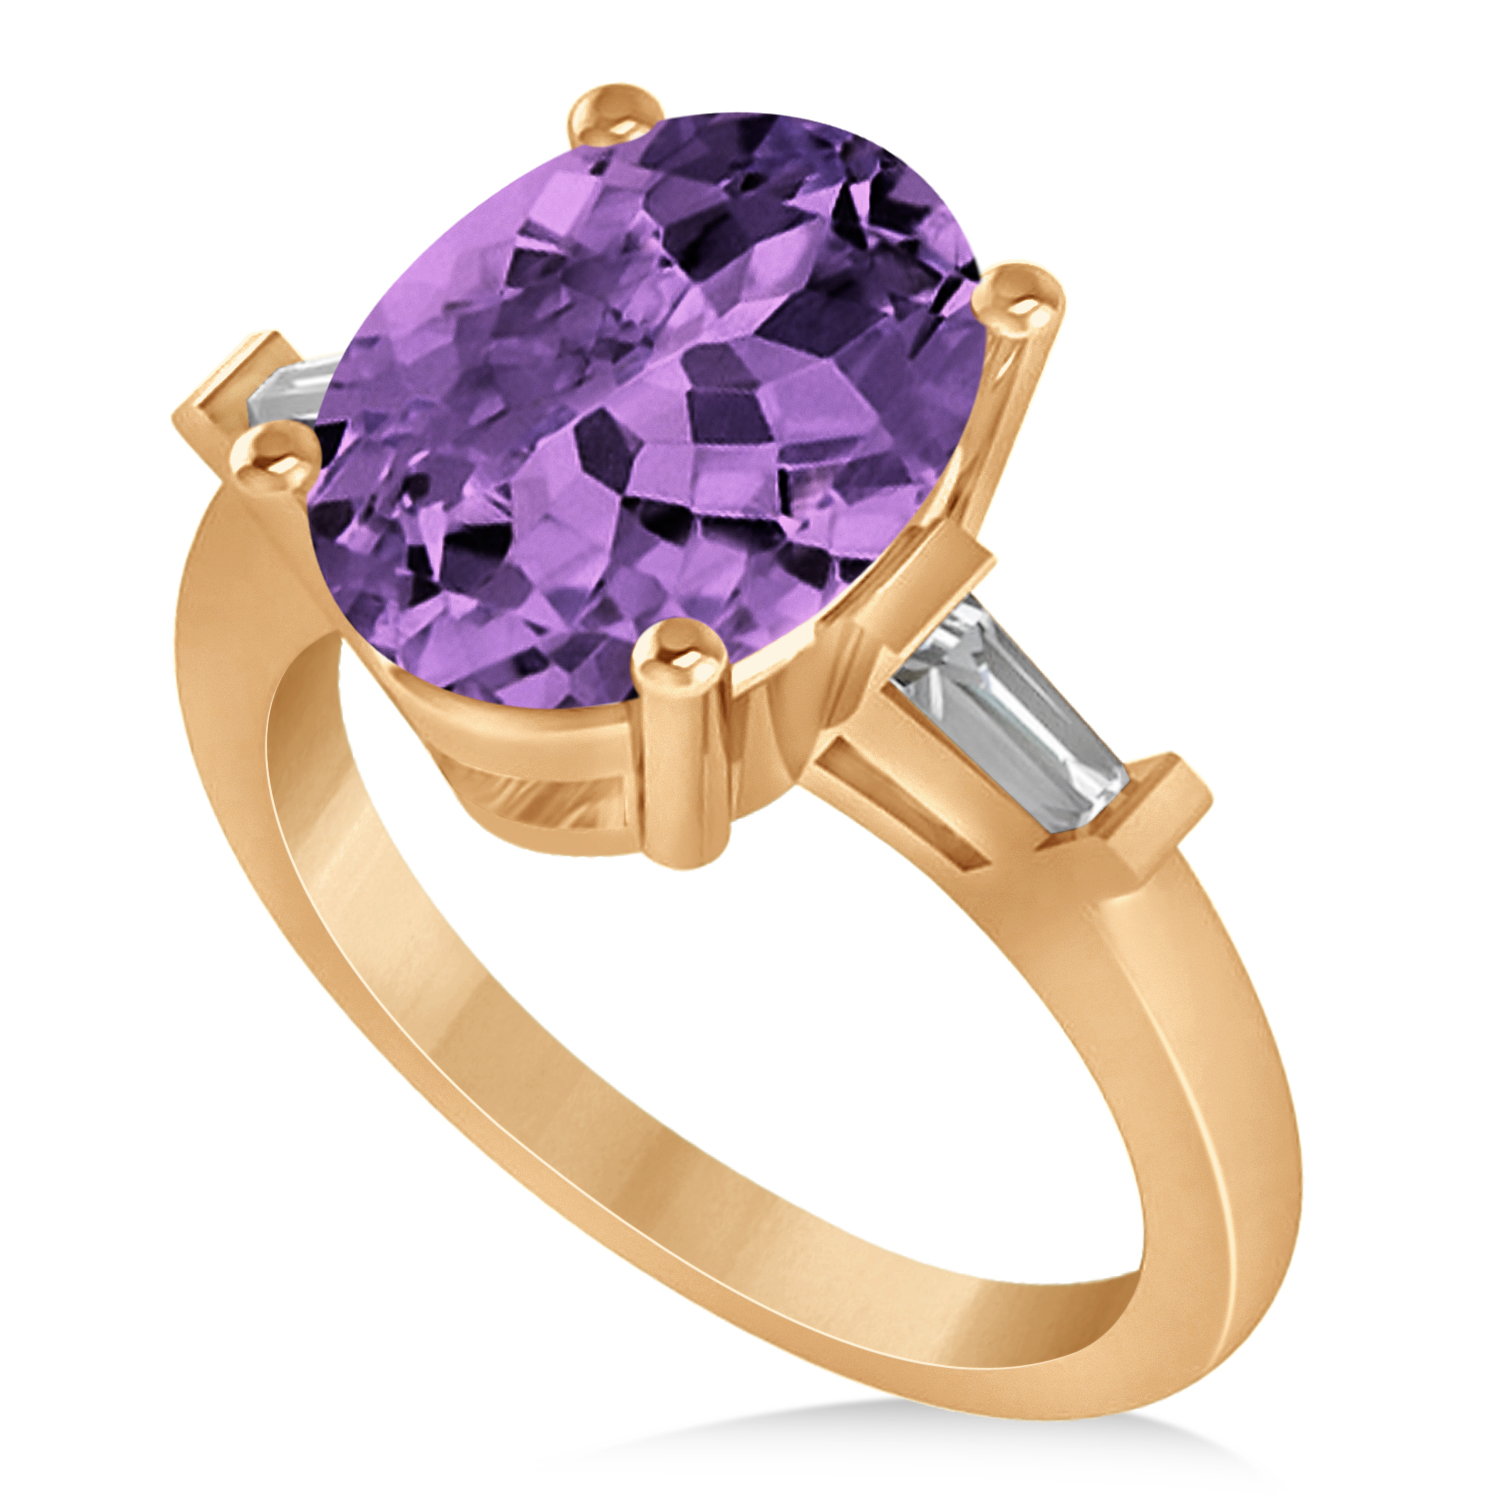 oval baguette cut amethyst engagement ring 14k rose gold. Black Bedroom Furniture Sets. Home Design Ideas